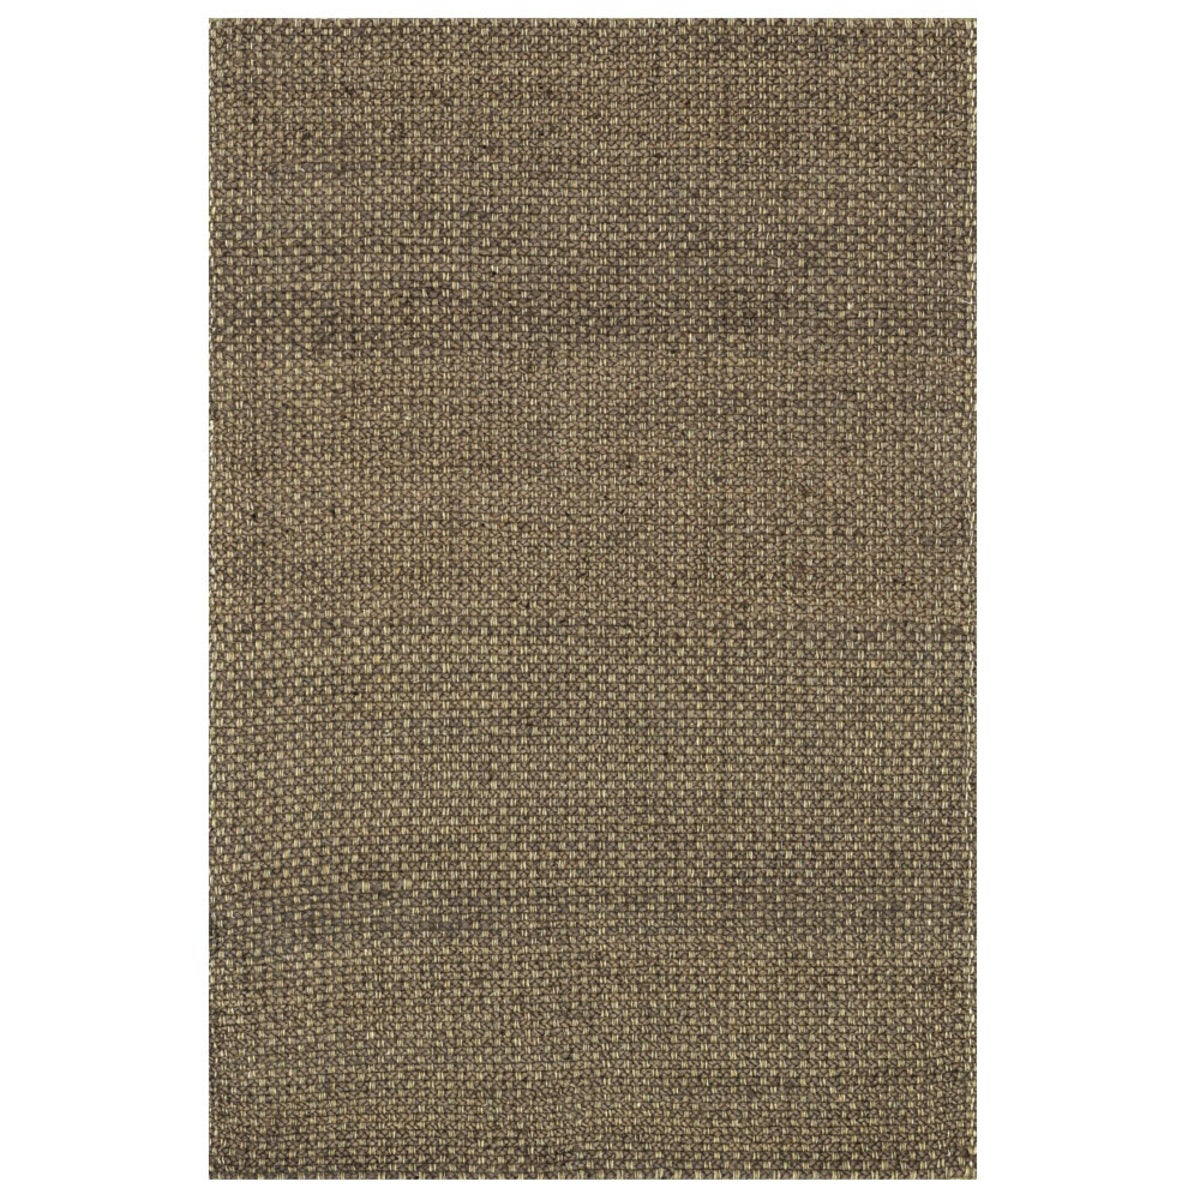 "Loloi Eco Checked Jute Rug in Black - 5' x 7'6"" - Brown"